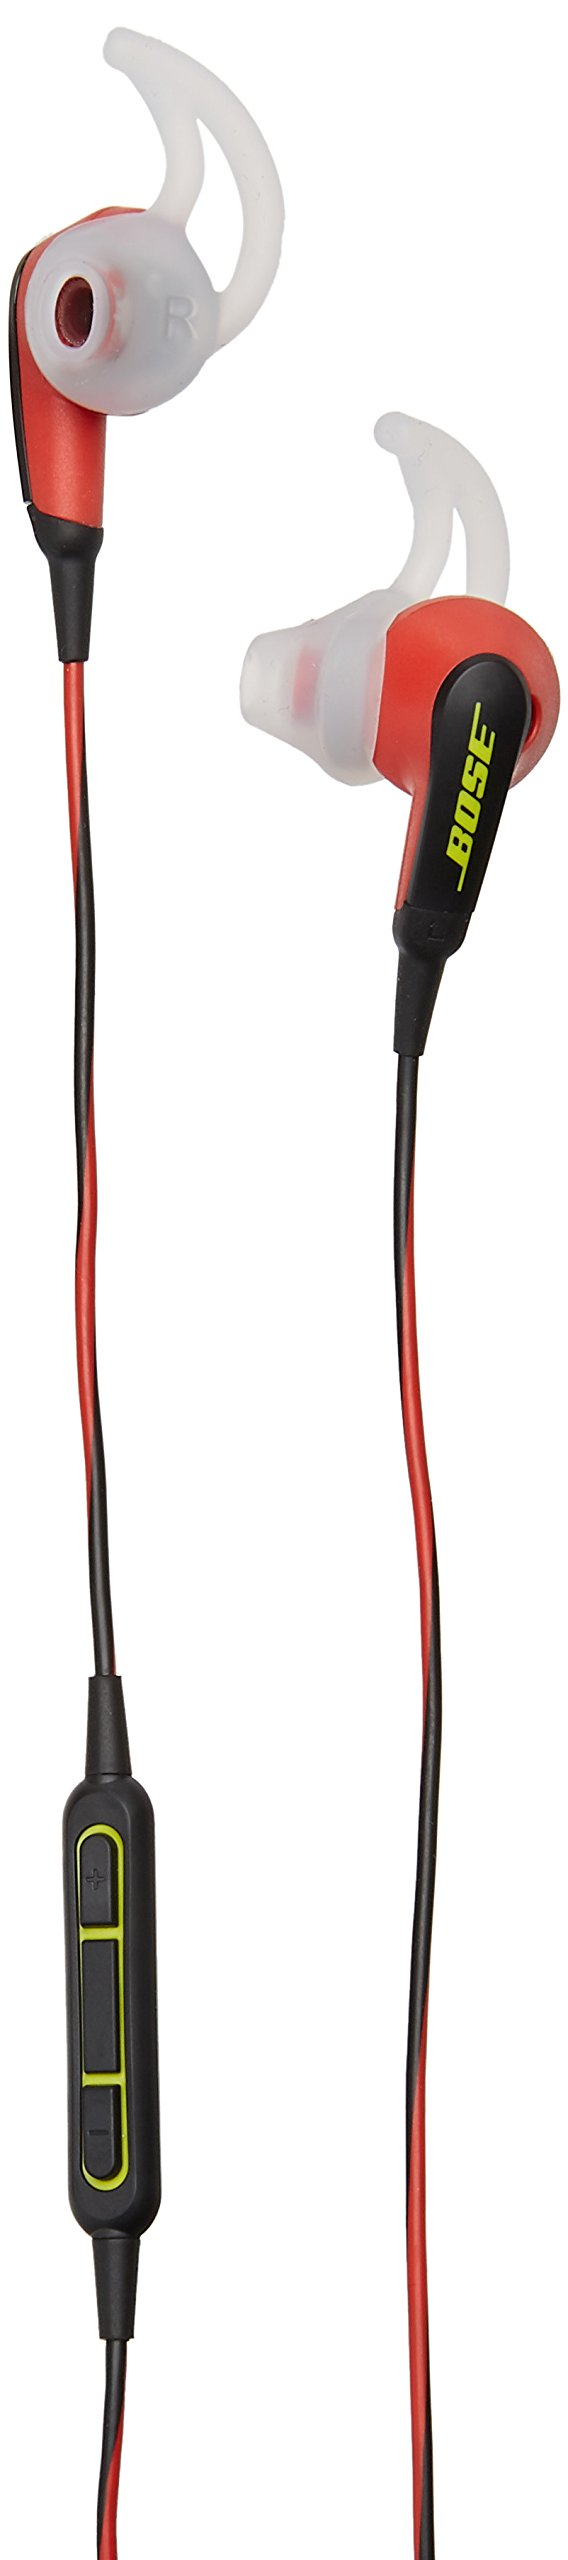 Bose SoundSport in-ear headphones - Apple devices, Power Red - 741776-0040 by Bose